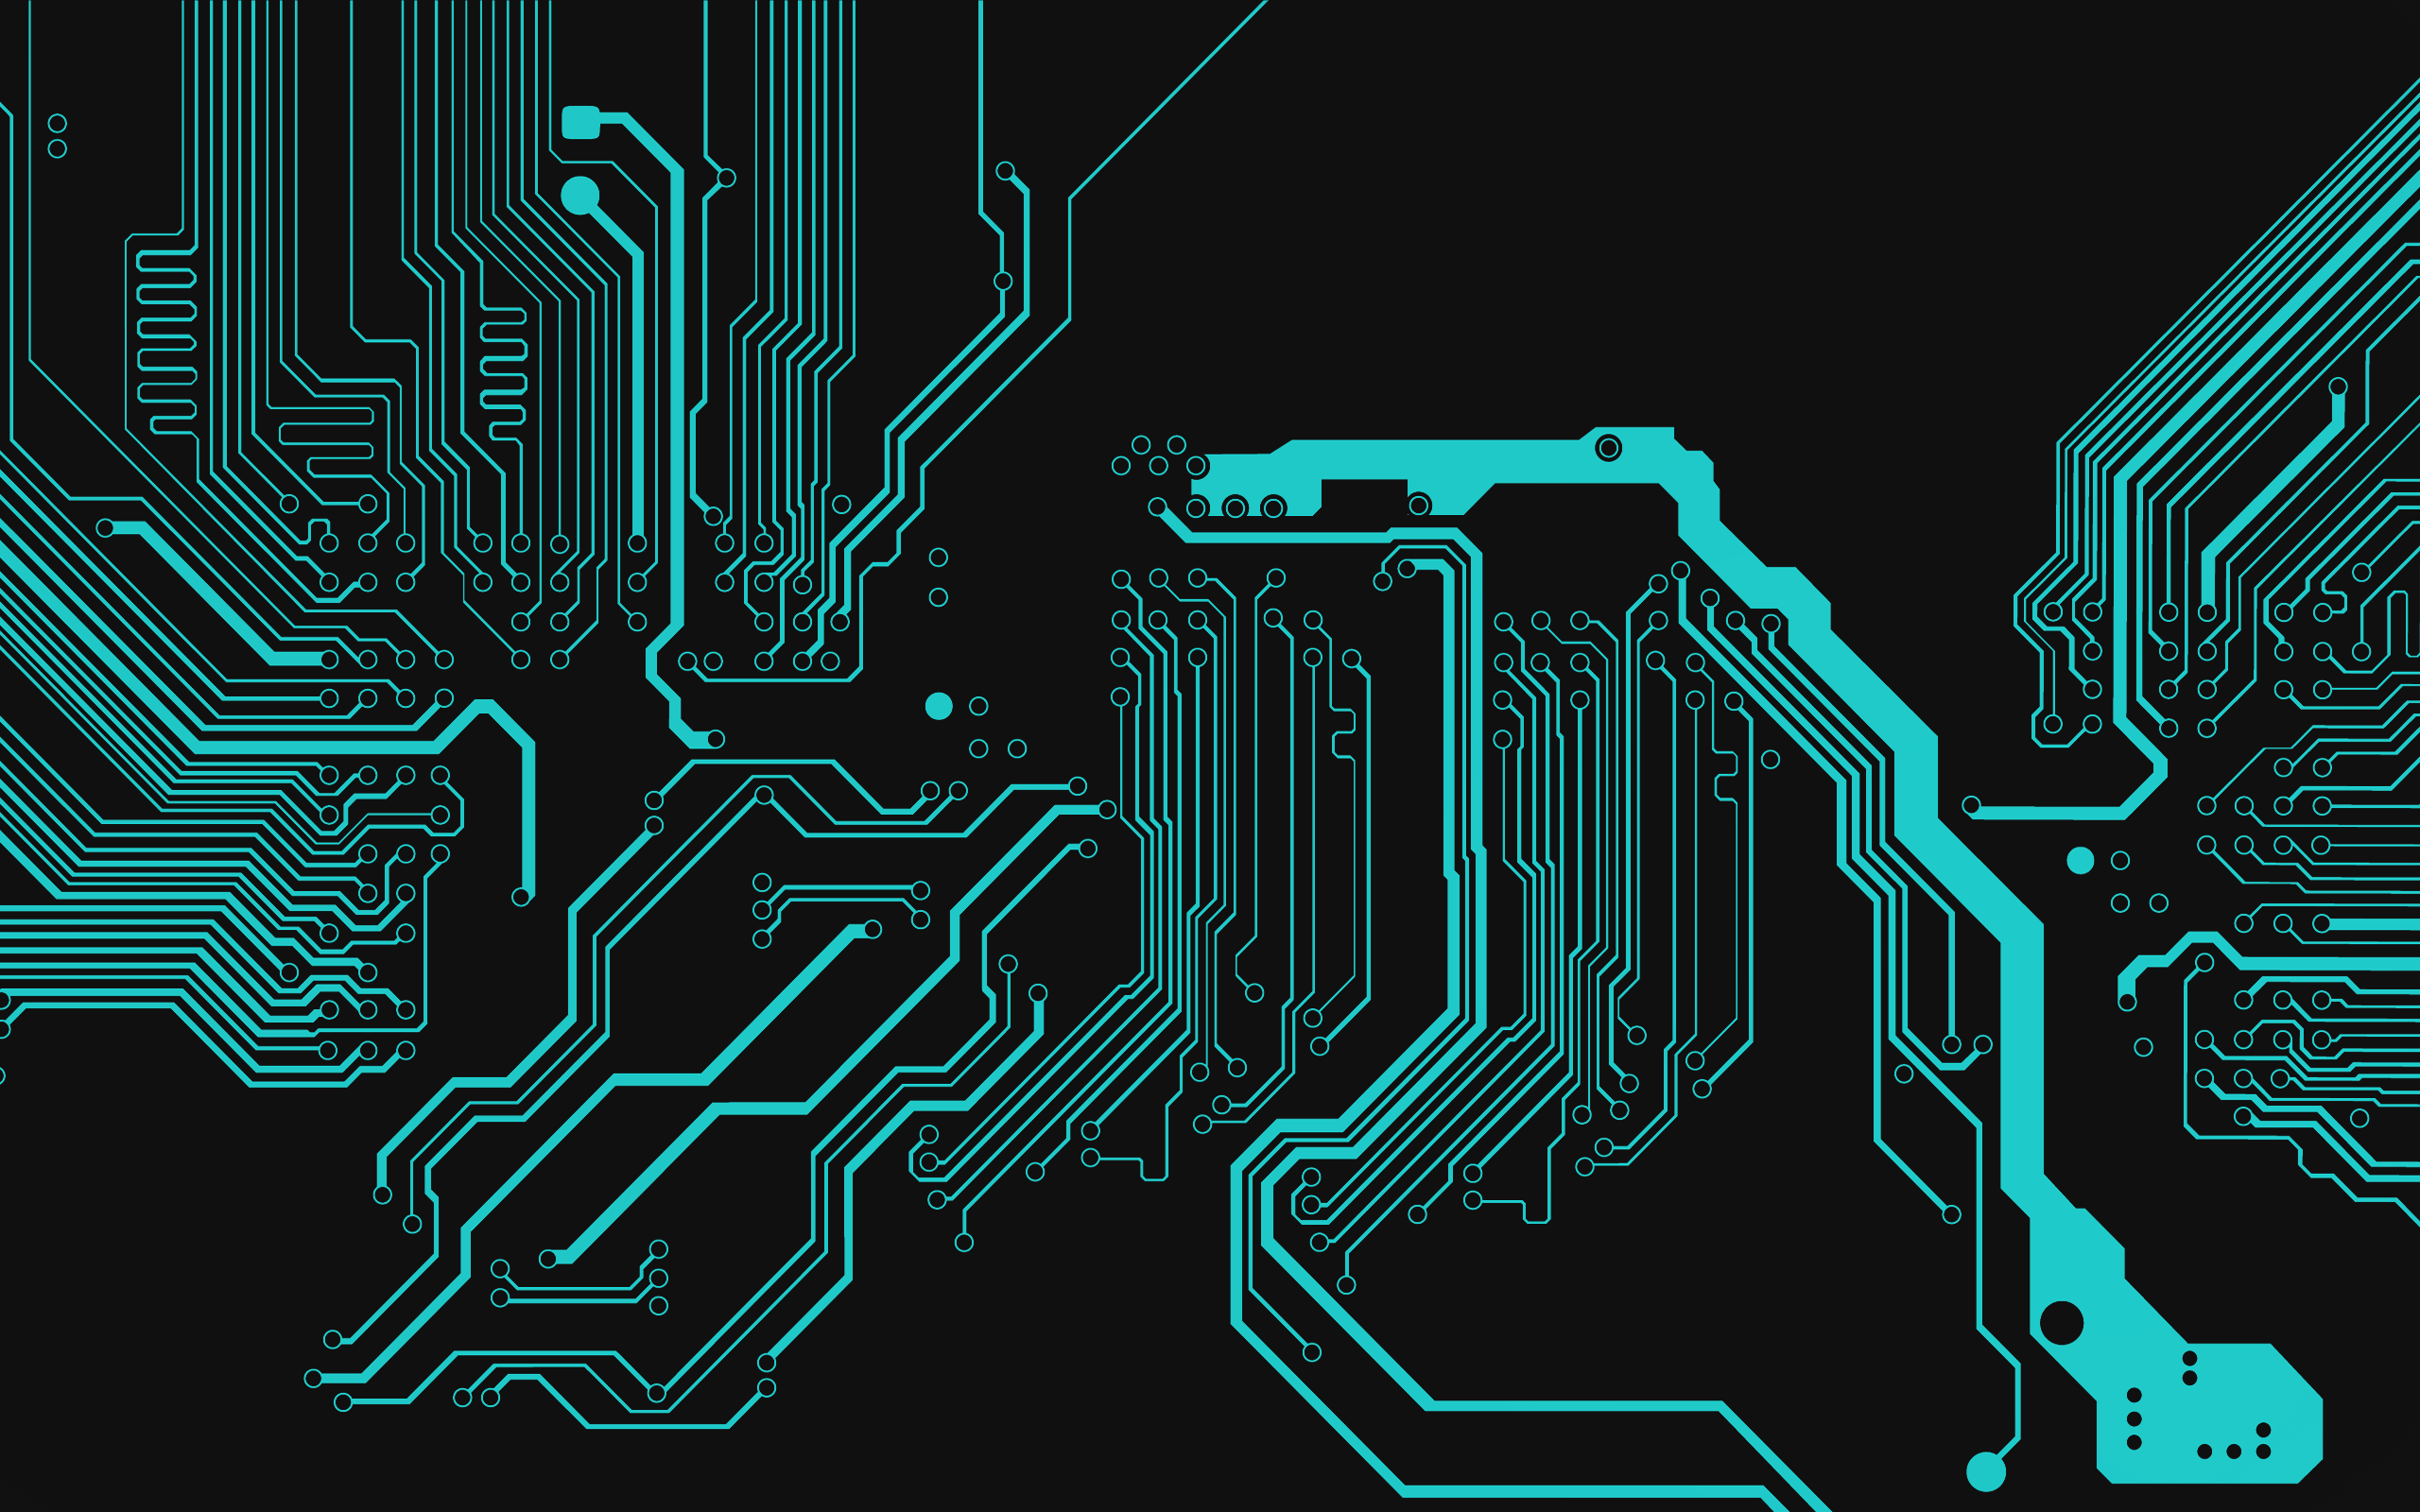 Computer Texture Google Search Art And Design Pinterest Code Circuit Board Background Illustration